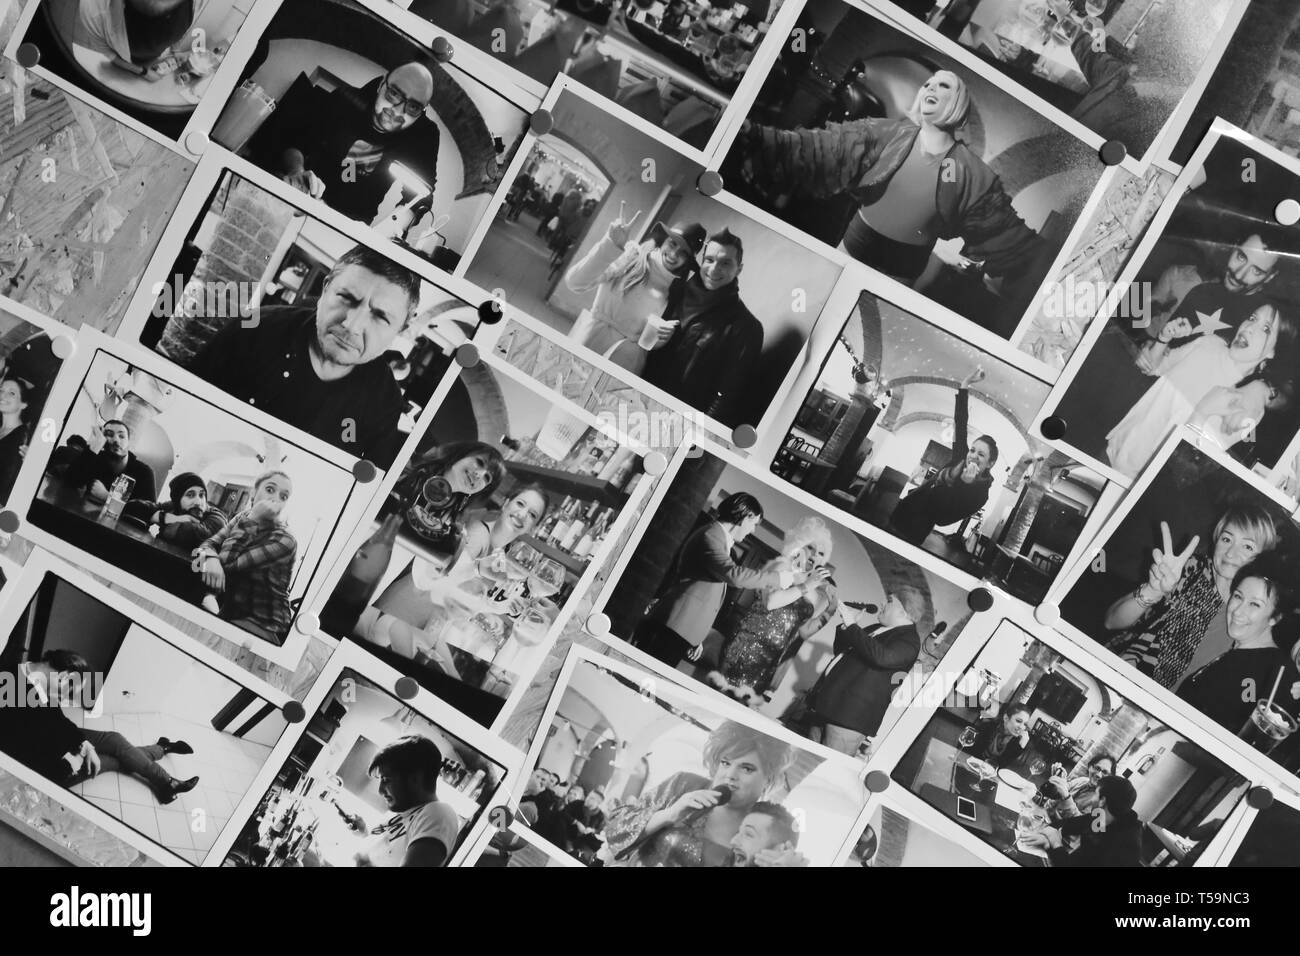 Photographs in black and white of various people on the wall - Stock Image